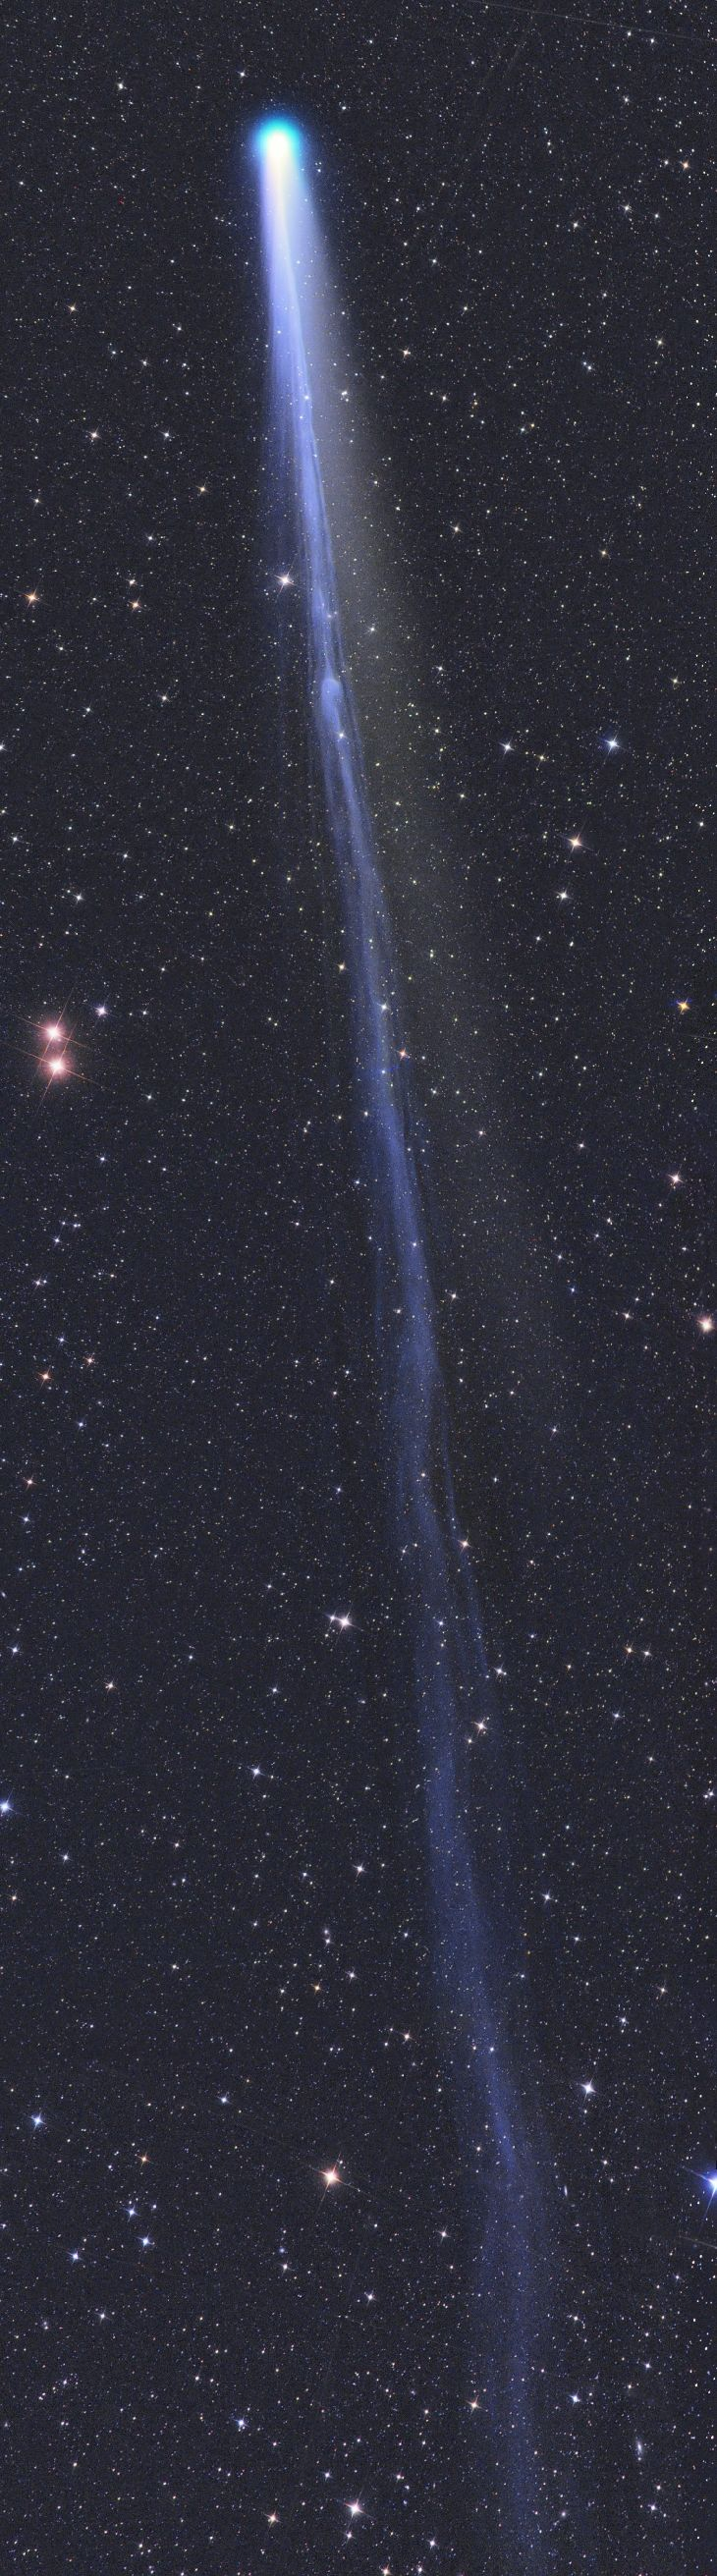 #Comet C/2013 R1 Lovejoy  Taken by Gerald Rhemann on December 13, 2013 @ Jauerling, Lower Austria